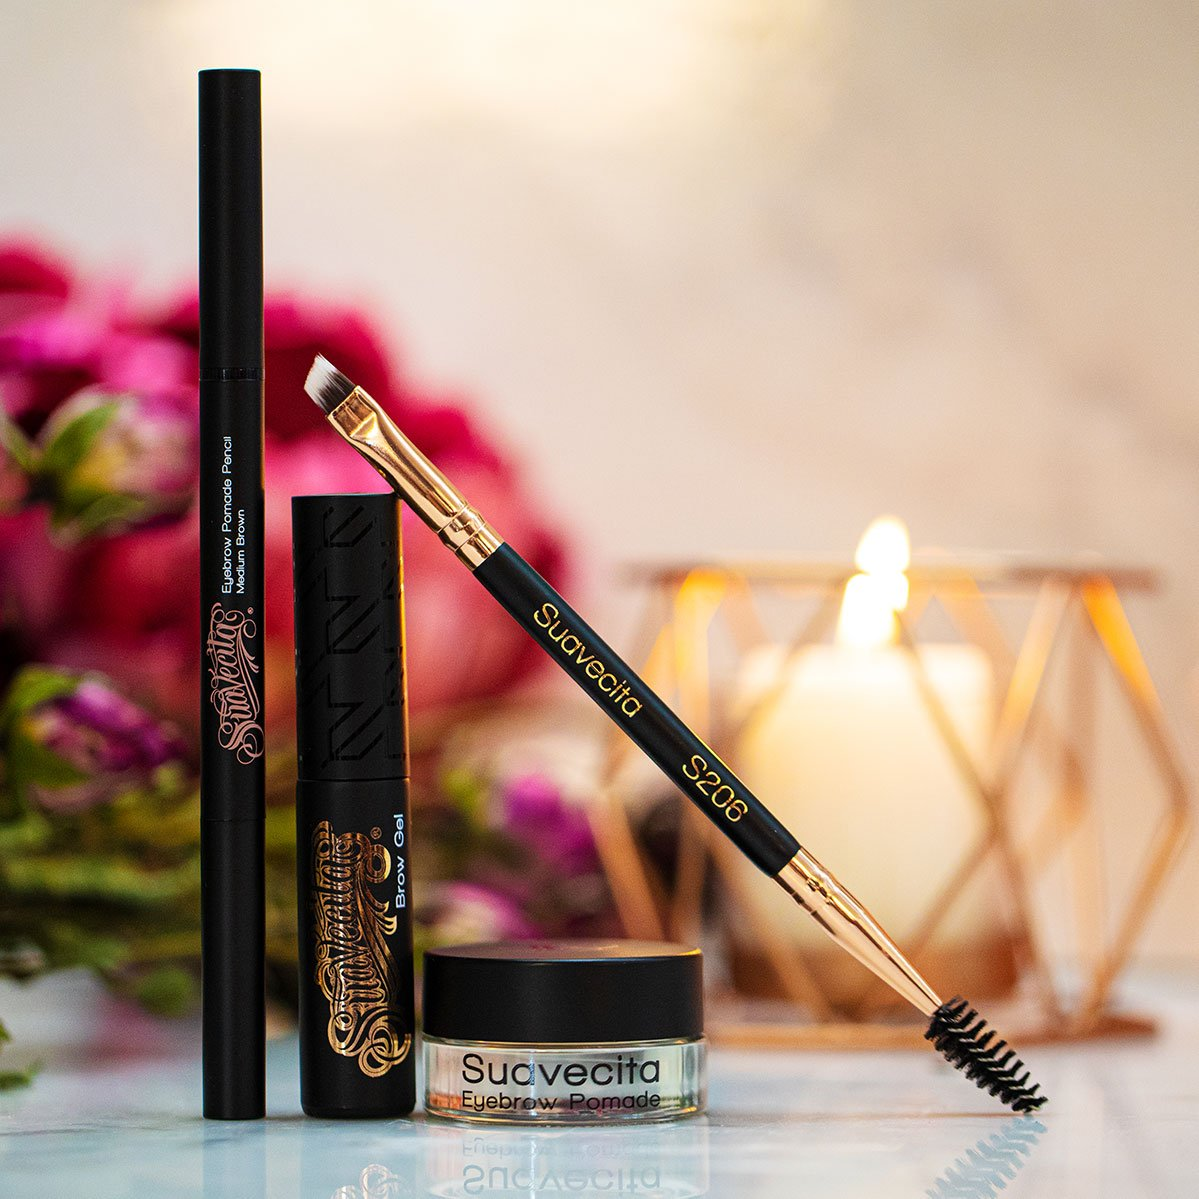 Suavecita Eye Brow Pomade and Brushes